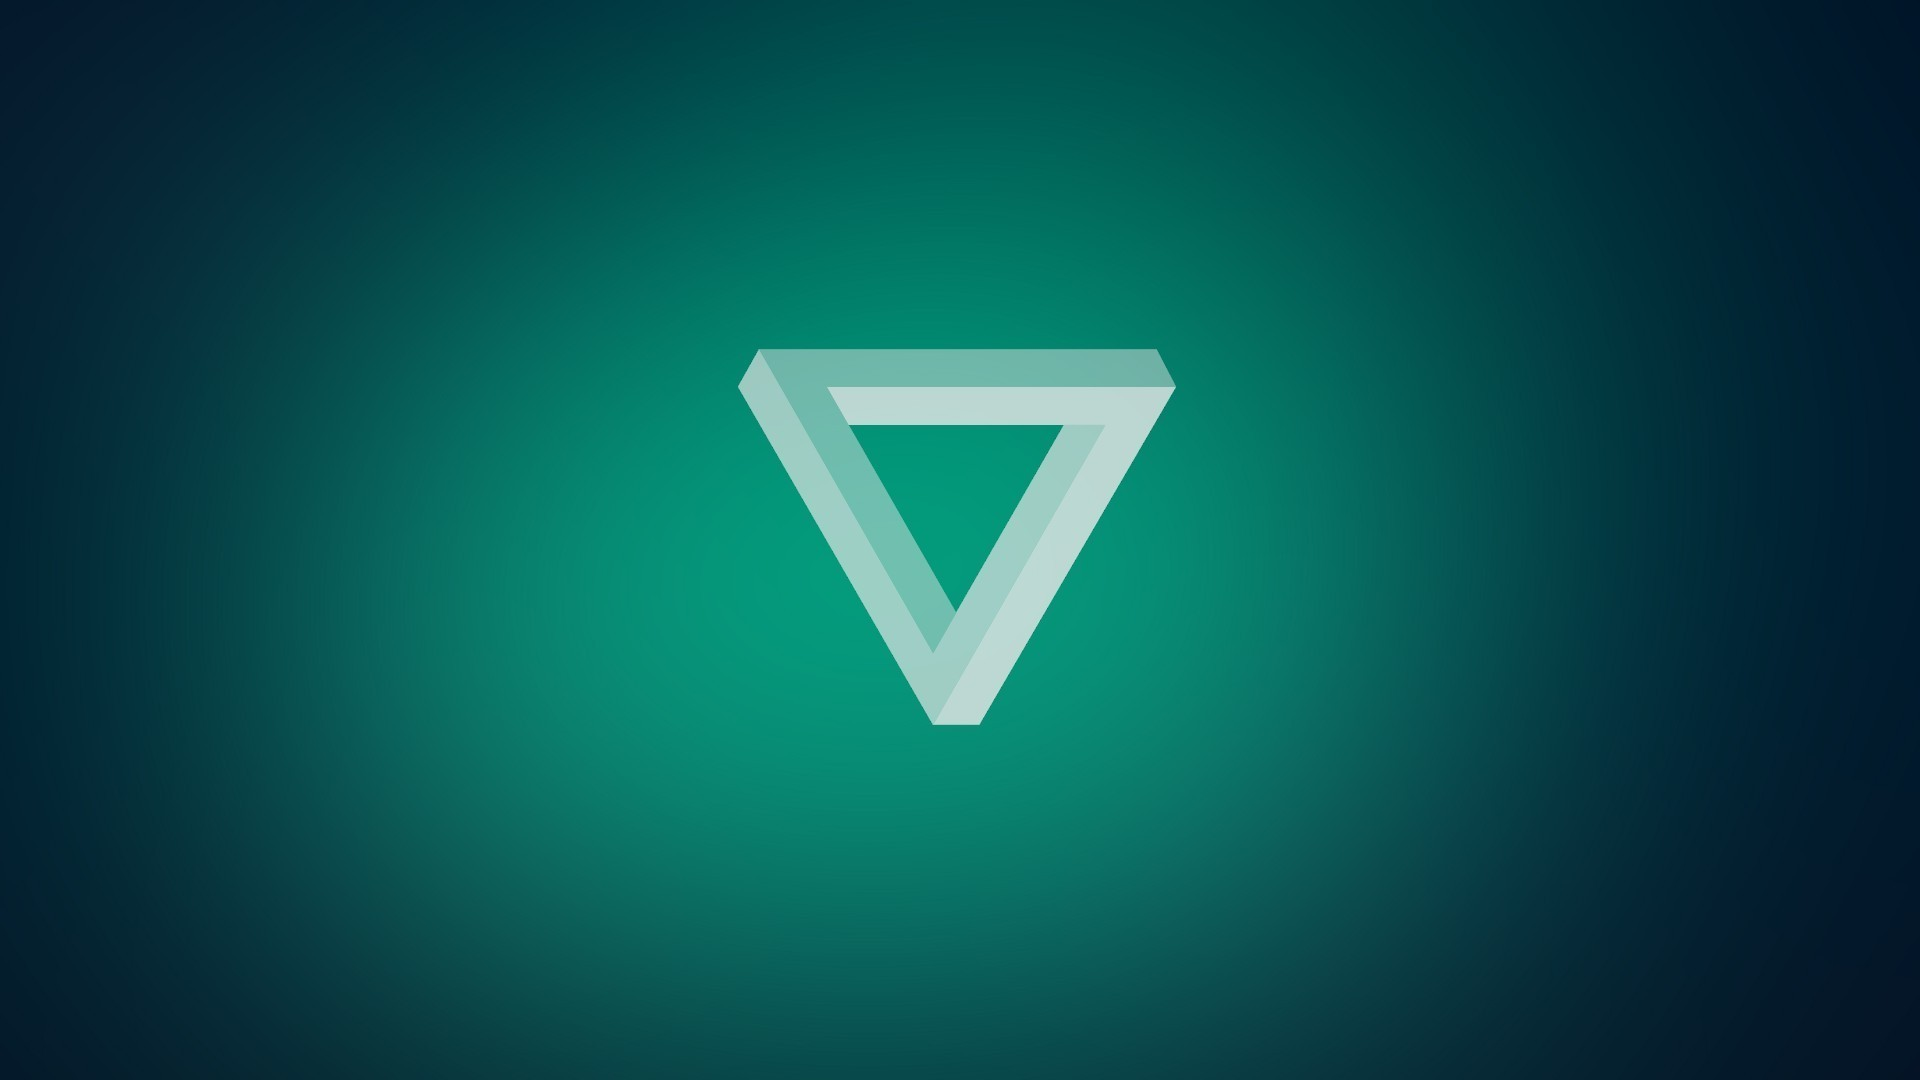 Anime, Penrose Triangle, Minimalism Wallpapers HD / Desktop And ..